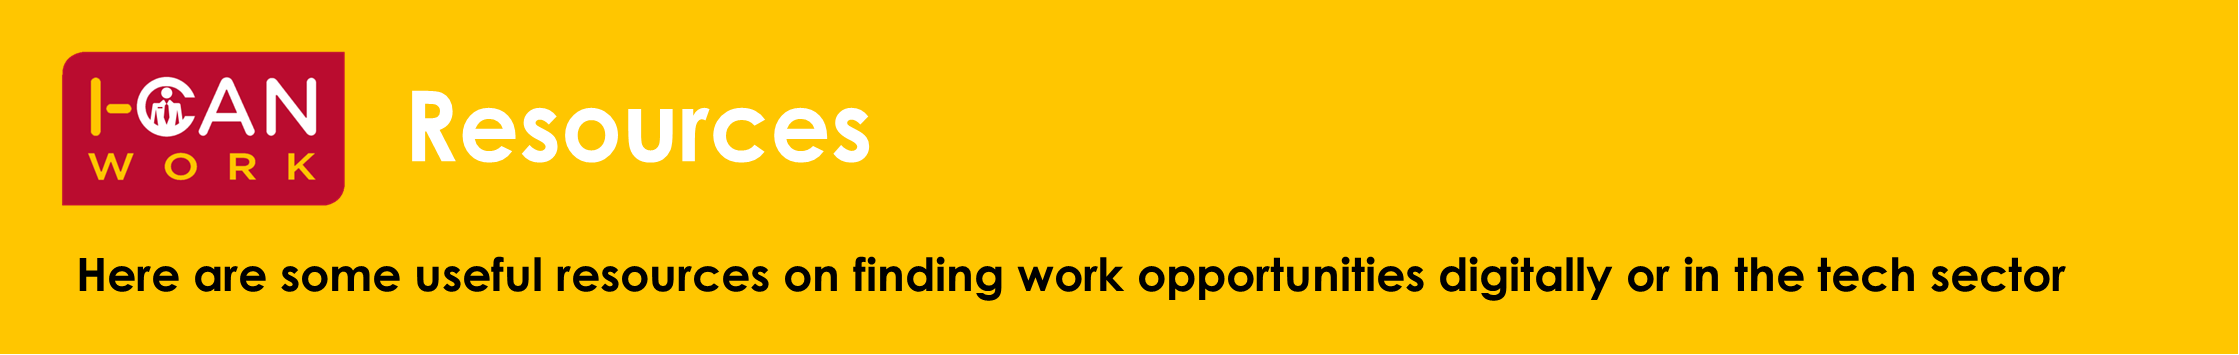 Banner directing you to companies that can assist with finding work opportunities